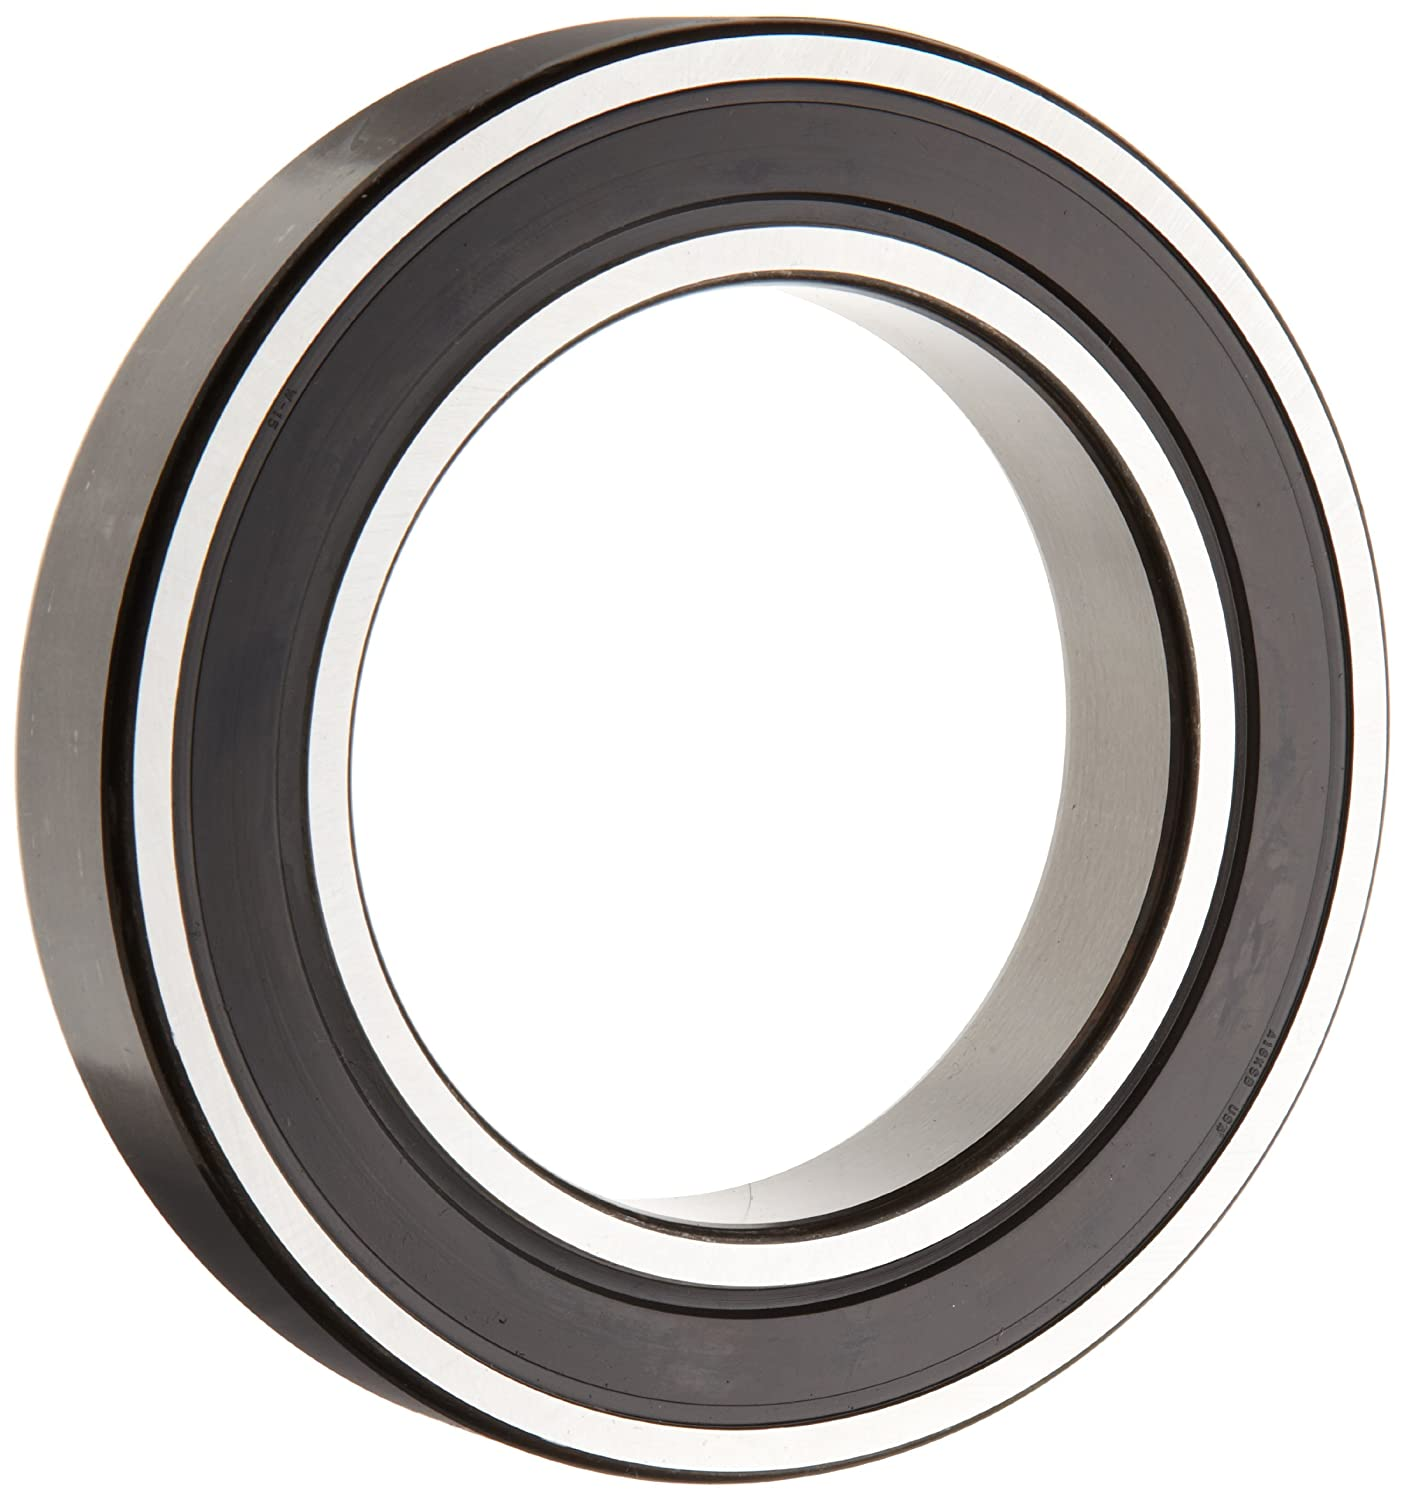 SKF 6008 2RSJEM Deep Groove Ball Bearing, Double Sealed, Steel Cage, C3 Clearance, 40mm Bore, 68mm OD, 15mm Width, 2610lbf Static Load Capacity, 3780lbf Dynamic Load Capacity